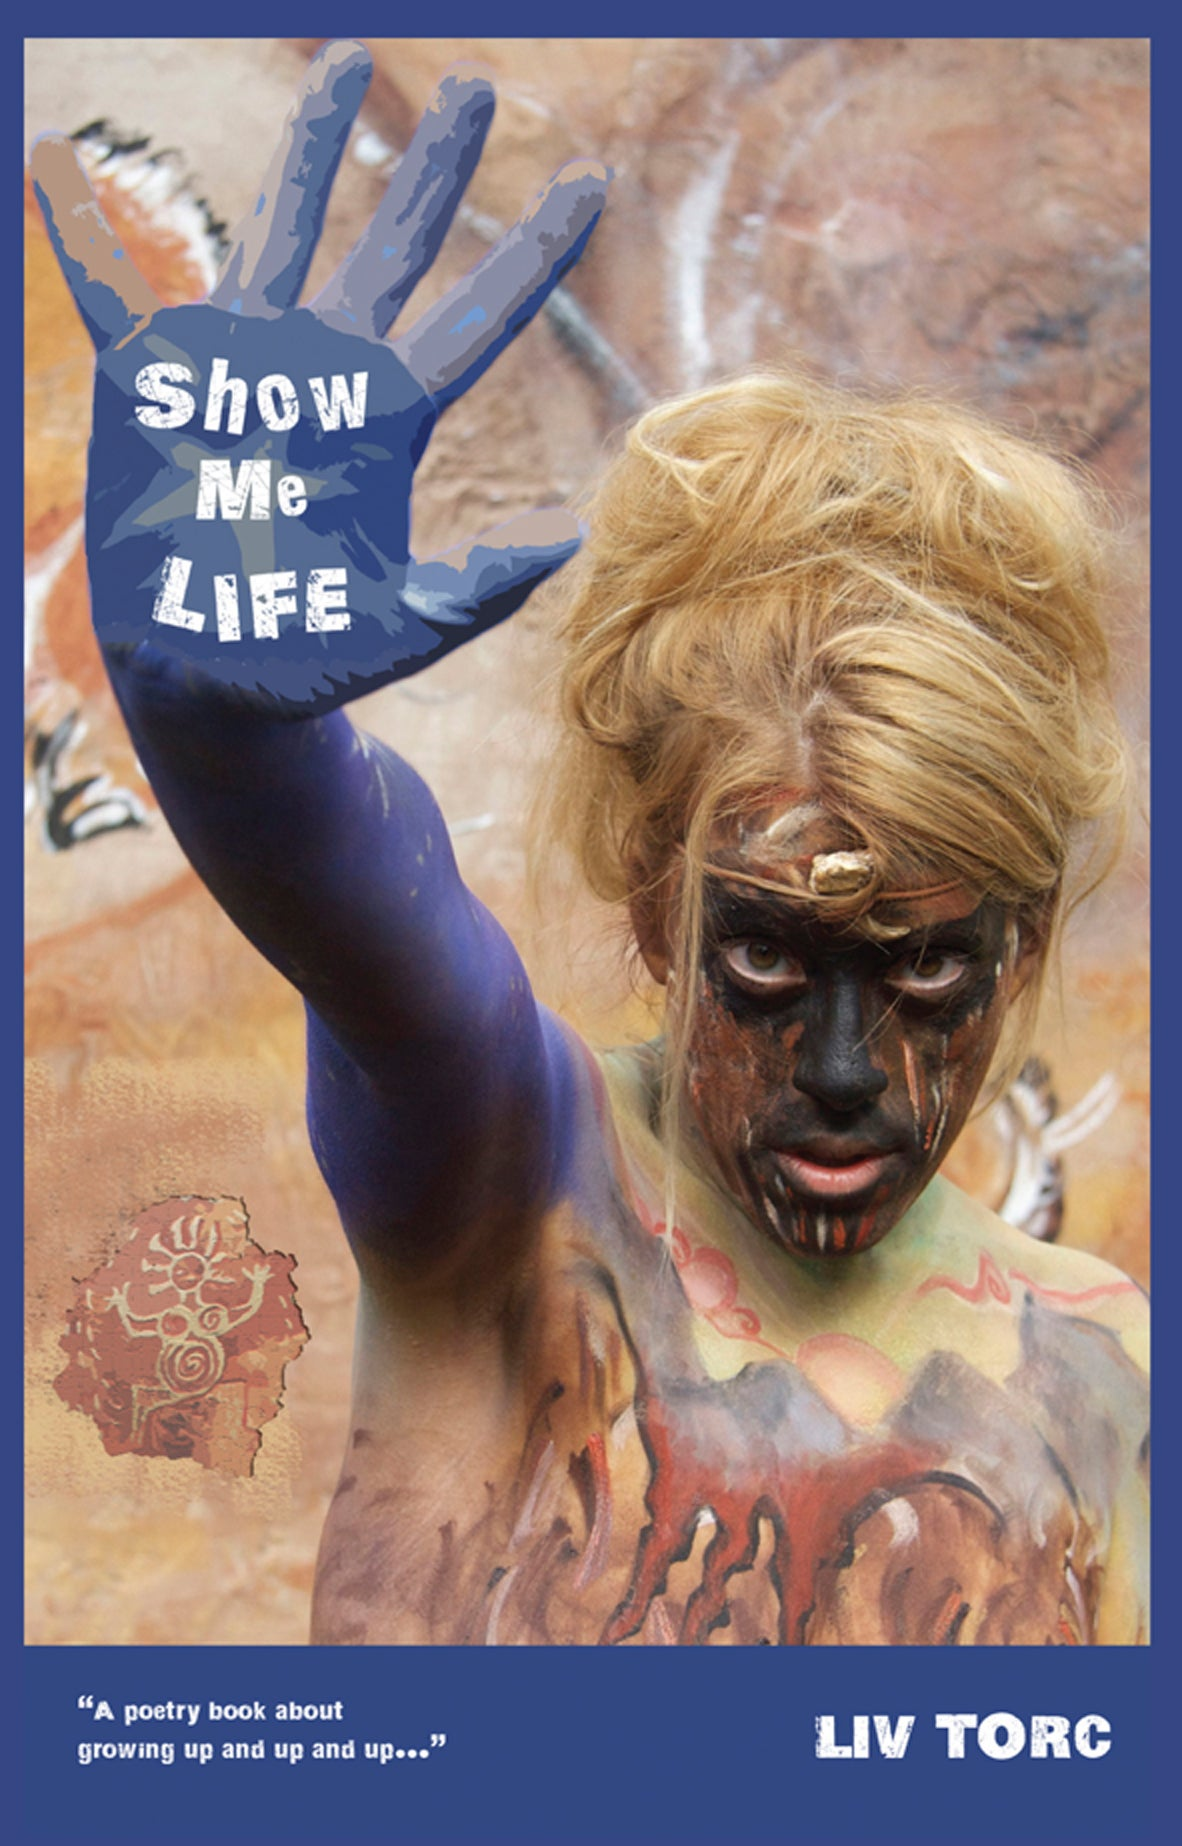 Image of Show Me Life by Liv Torc